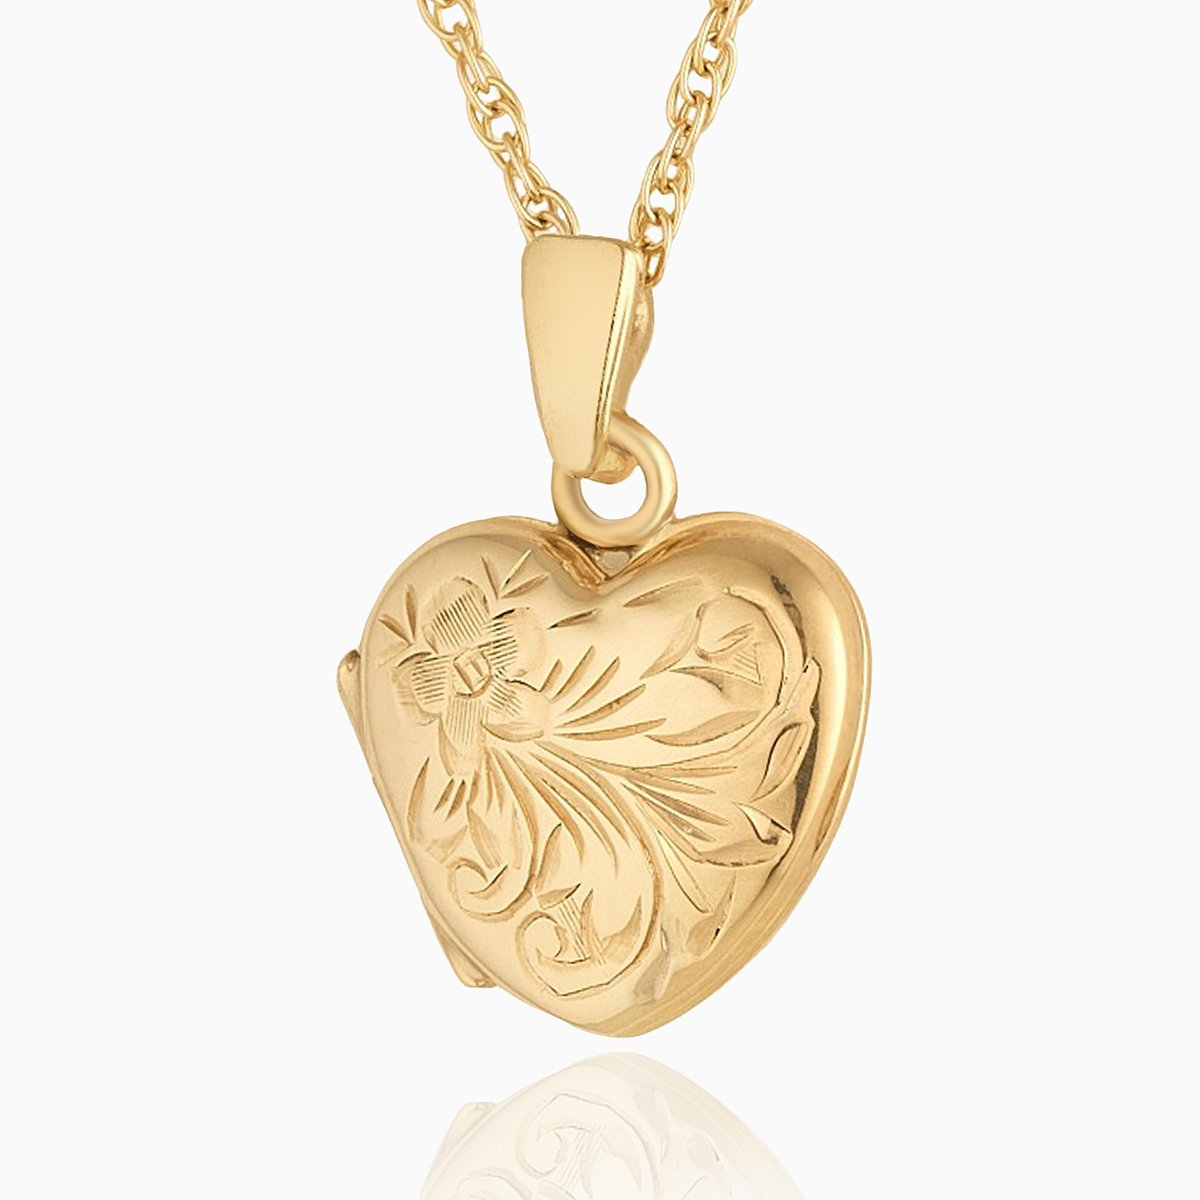 Product title: Hand Engraved Petite Floral Heart Locket, product type: Locket